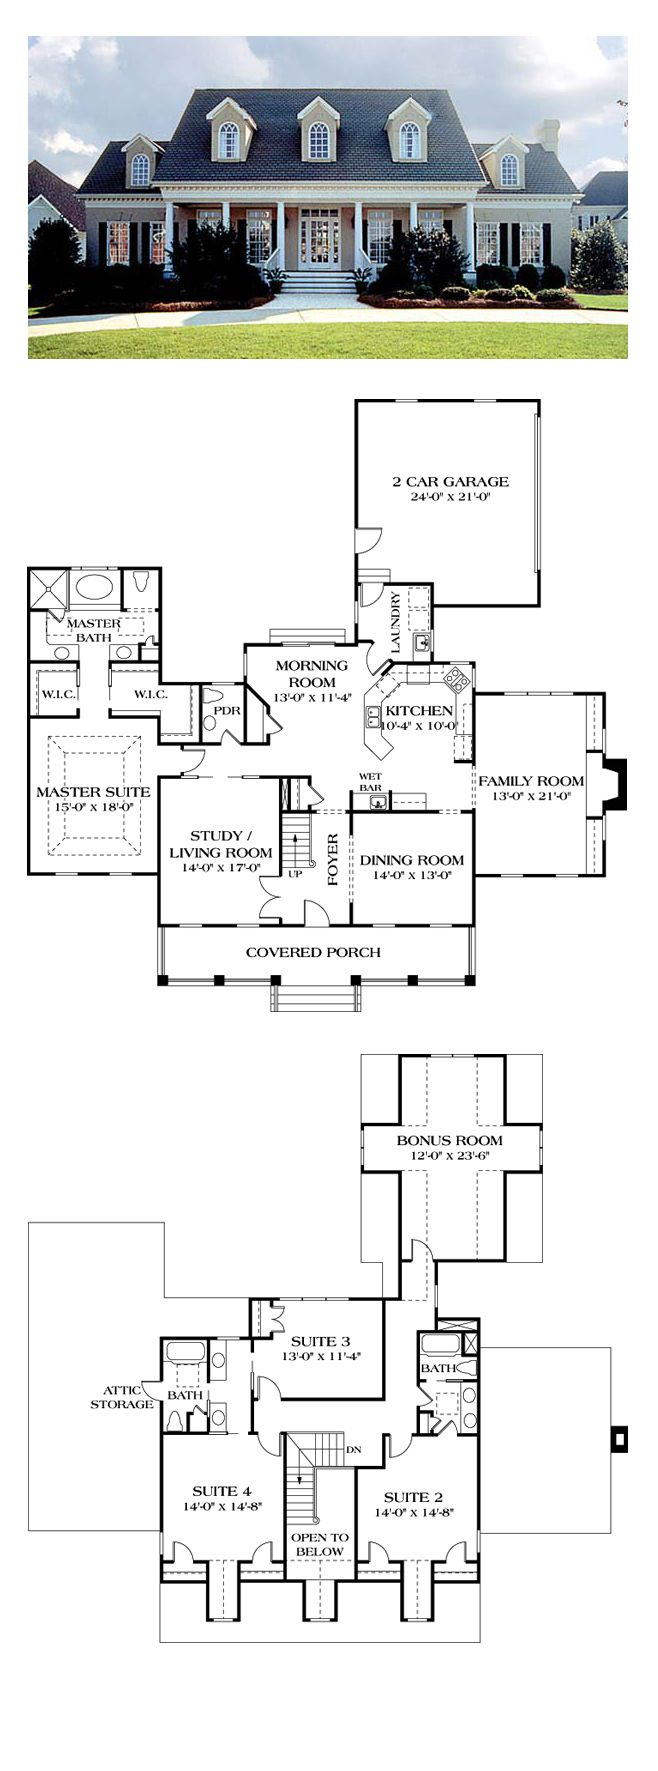 17 Best Ideas About Floor Plans On Pinterest Home Plans